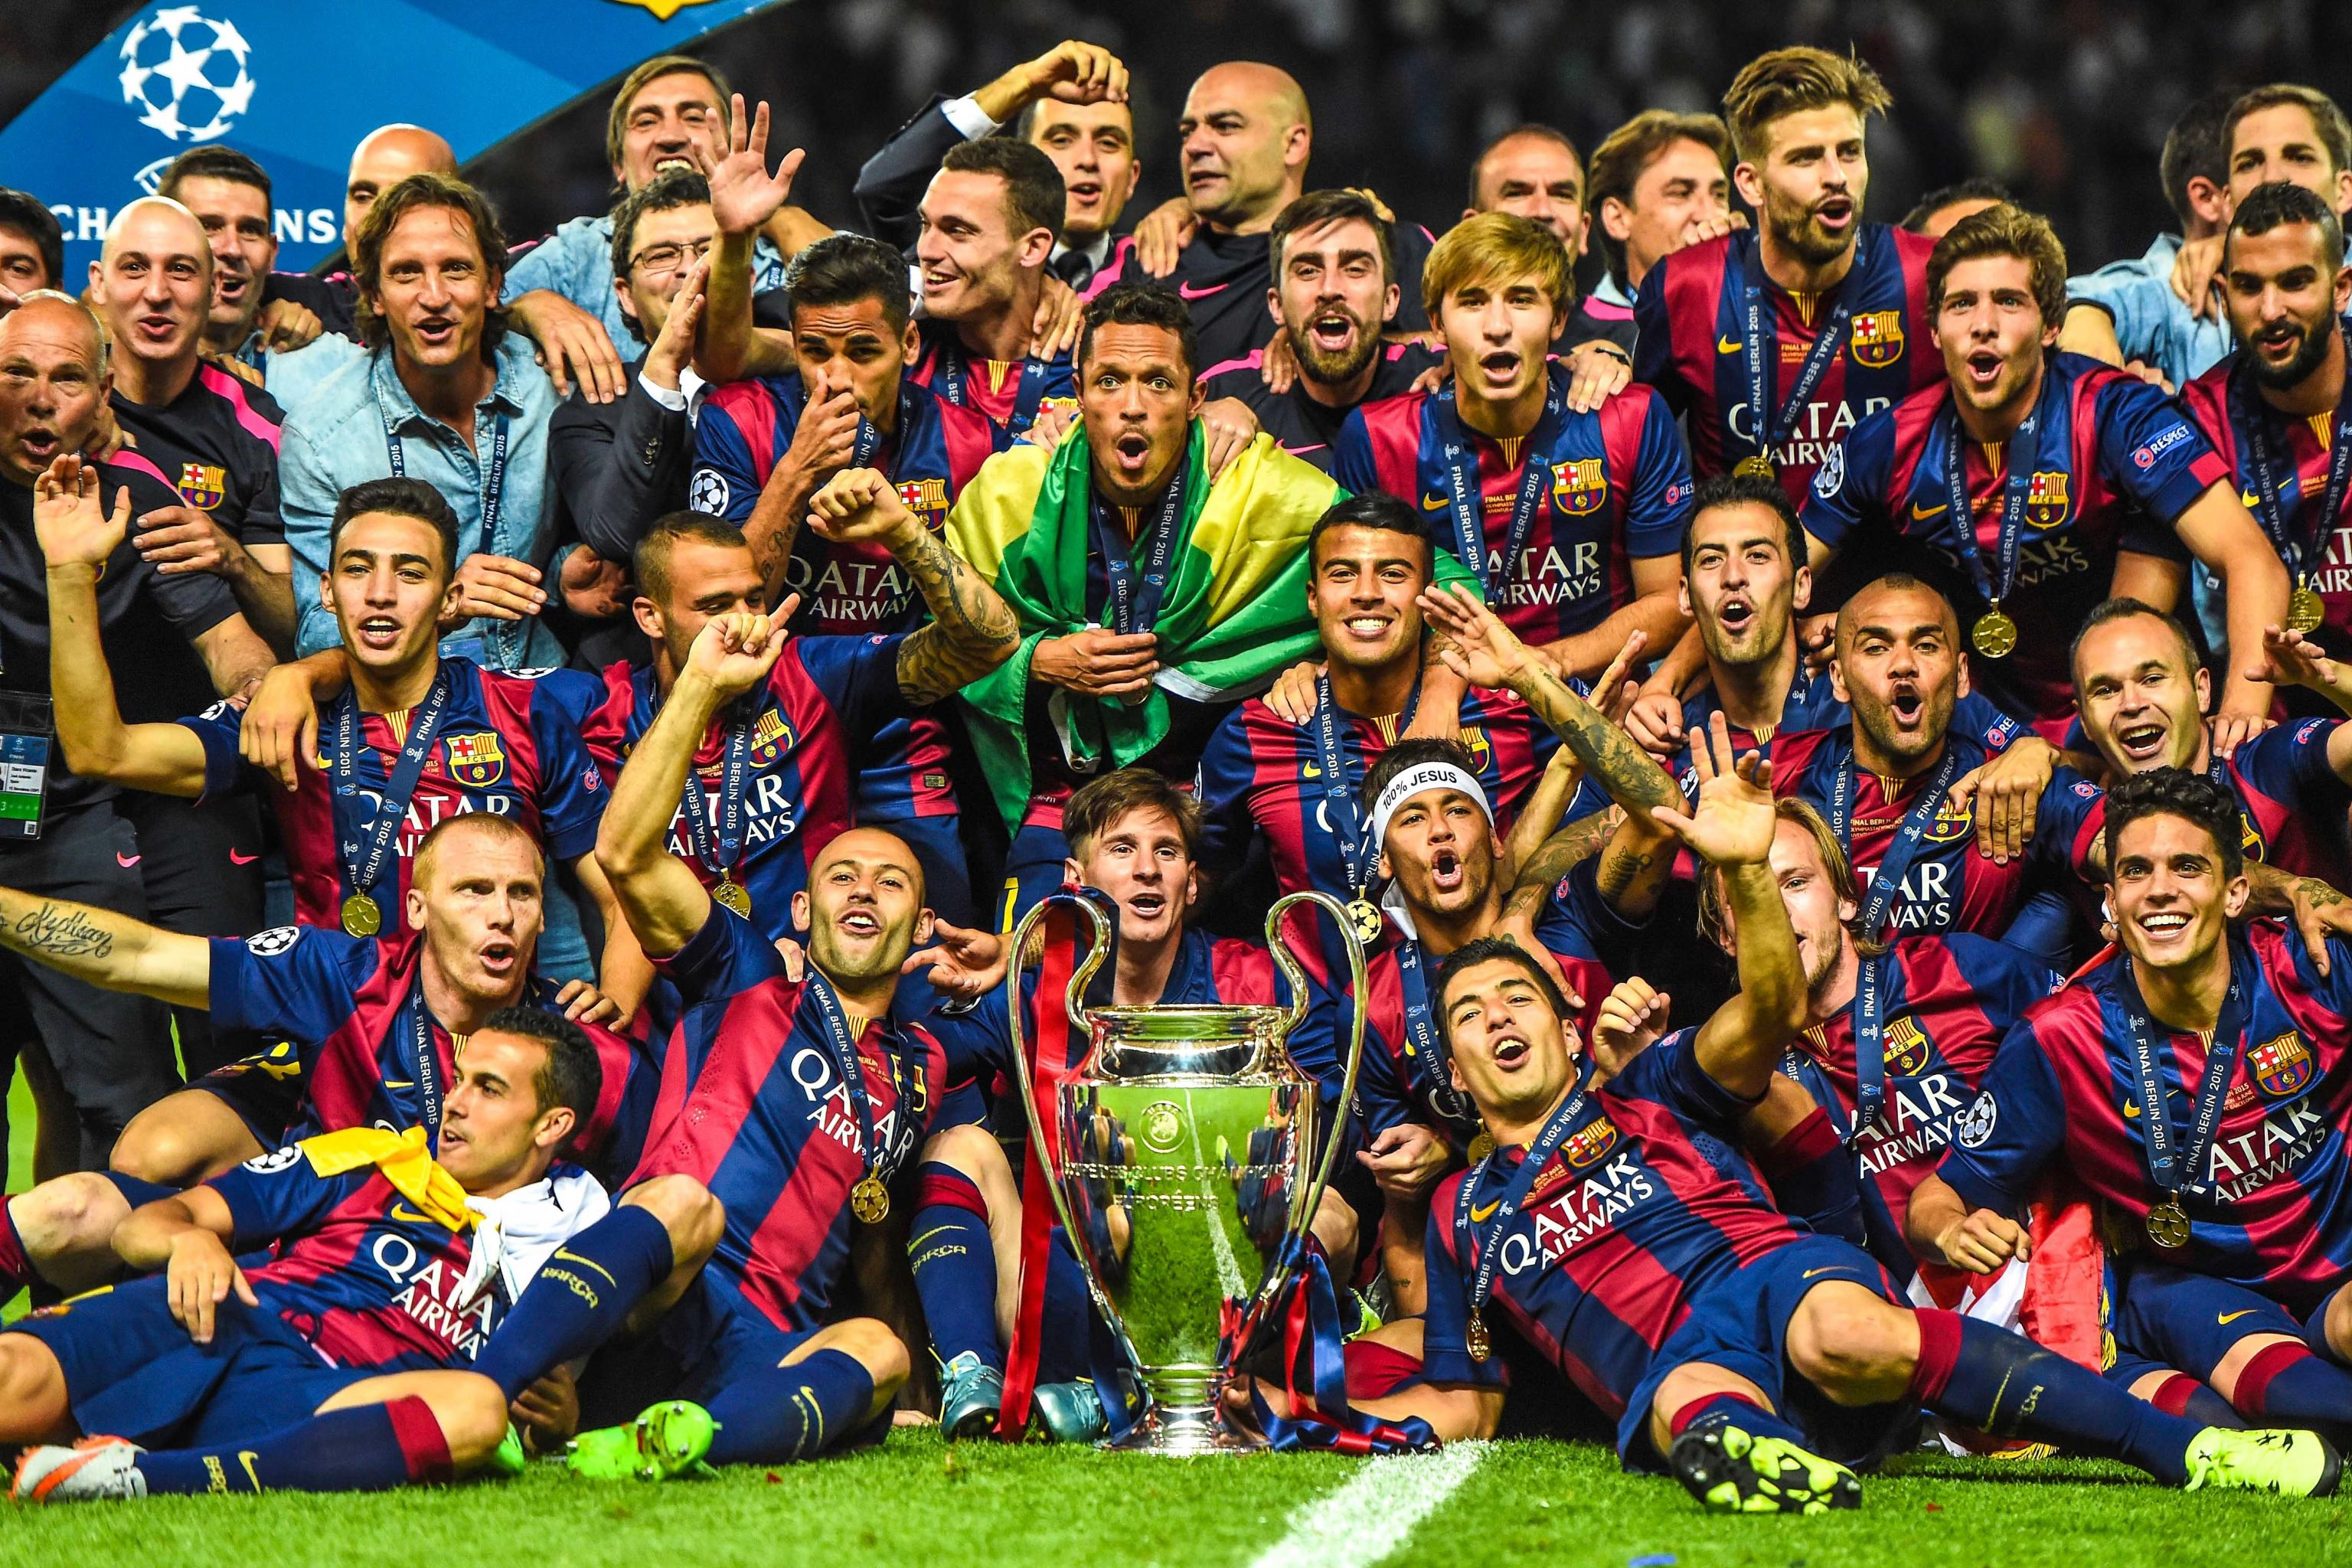 Juventus Vs Barcelona Score Report Reaction From 2015 Champions League Final Bleacher Report Latest News Videos And Highlights